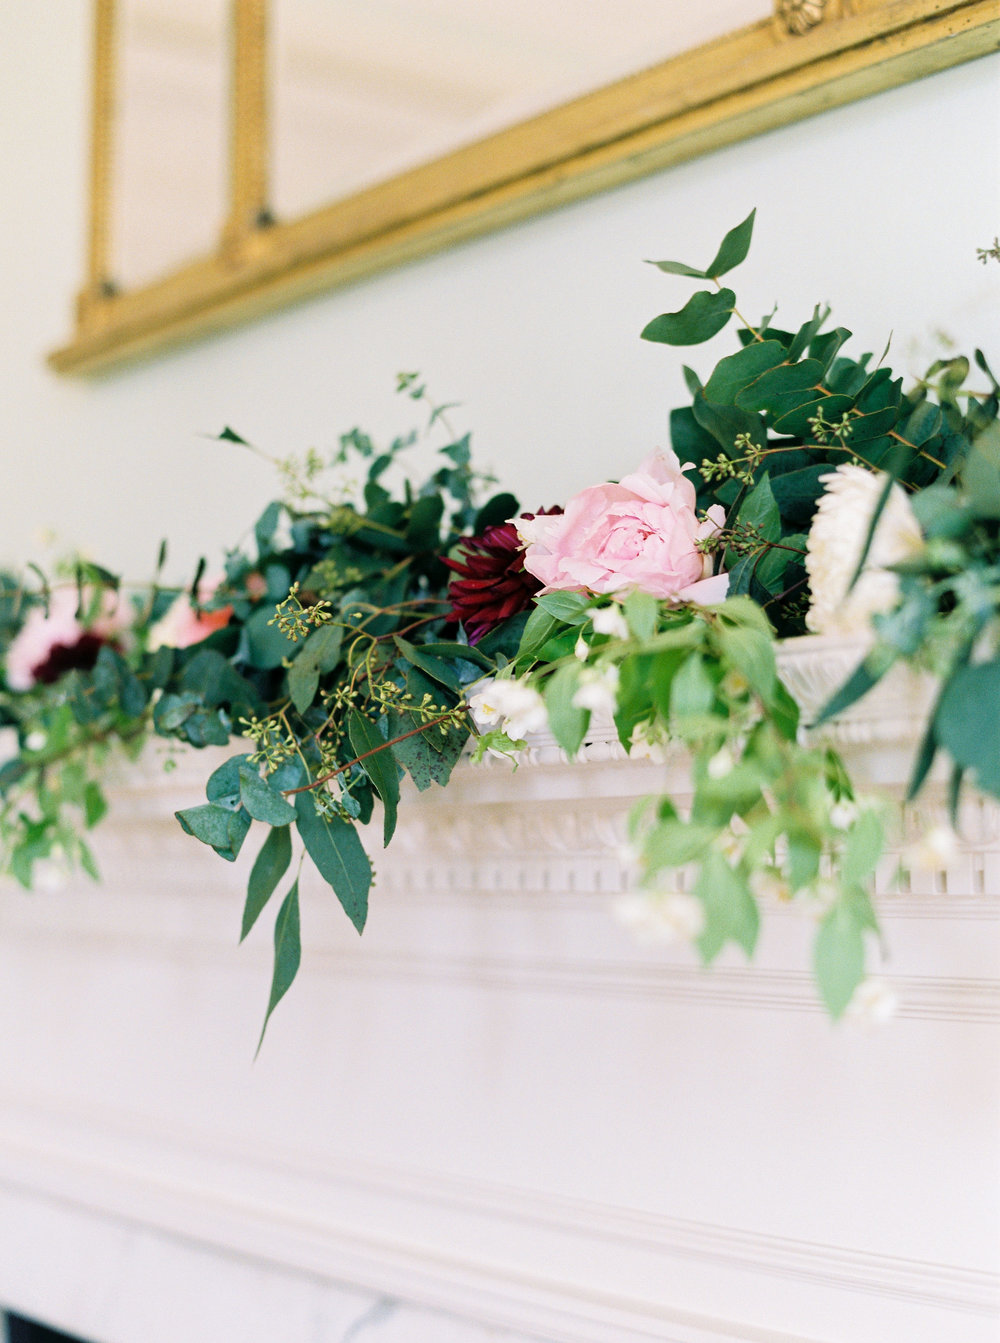 spring-inspired-wedding-at-kohl-mansion-burlingame-california-56.jpg